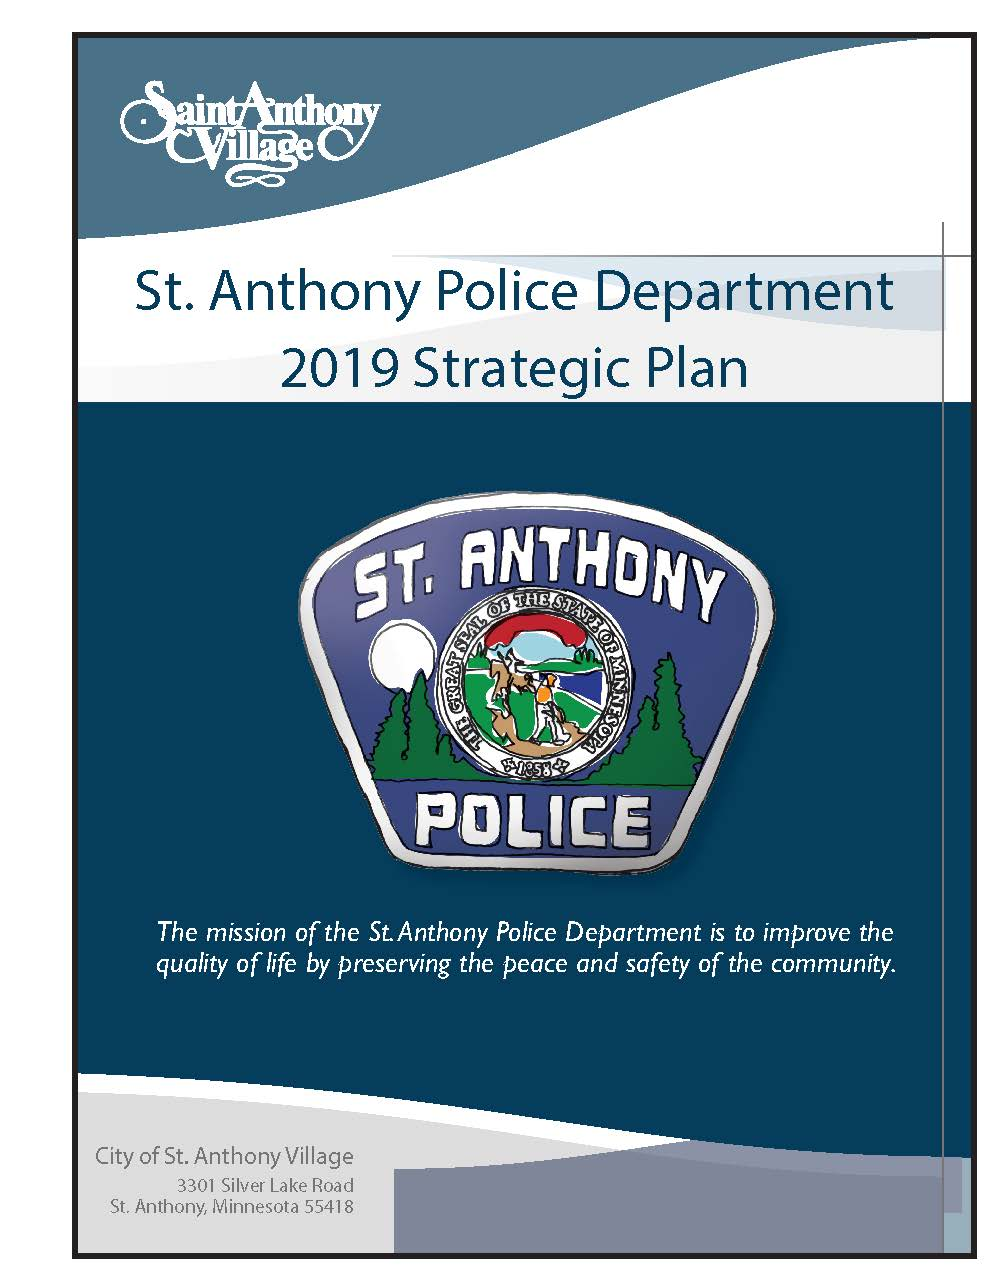 St. Anthony Police Department 2019 Strategic Plan